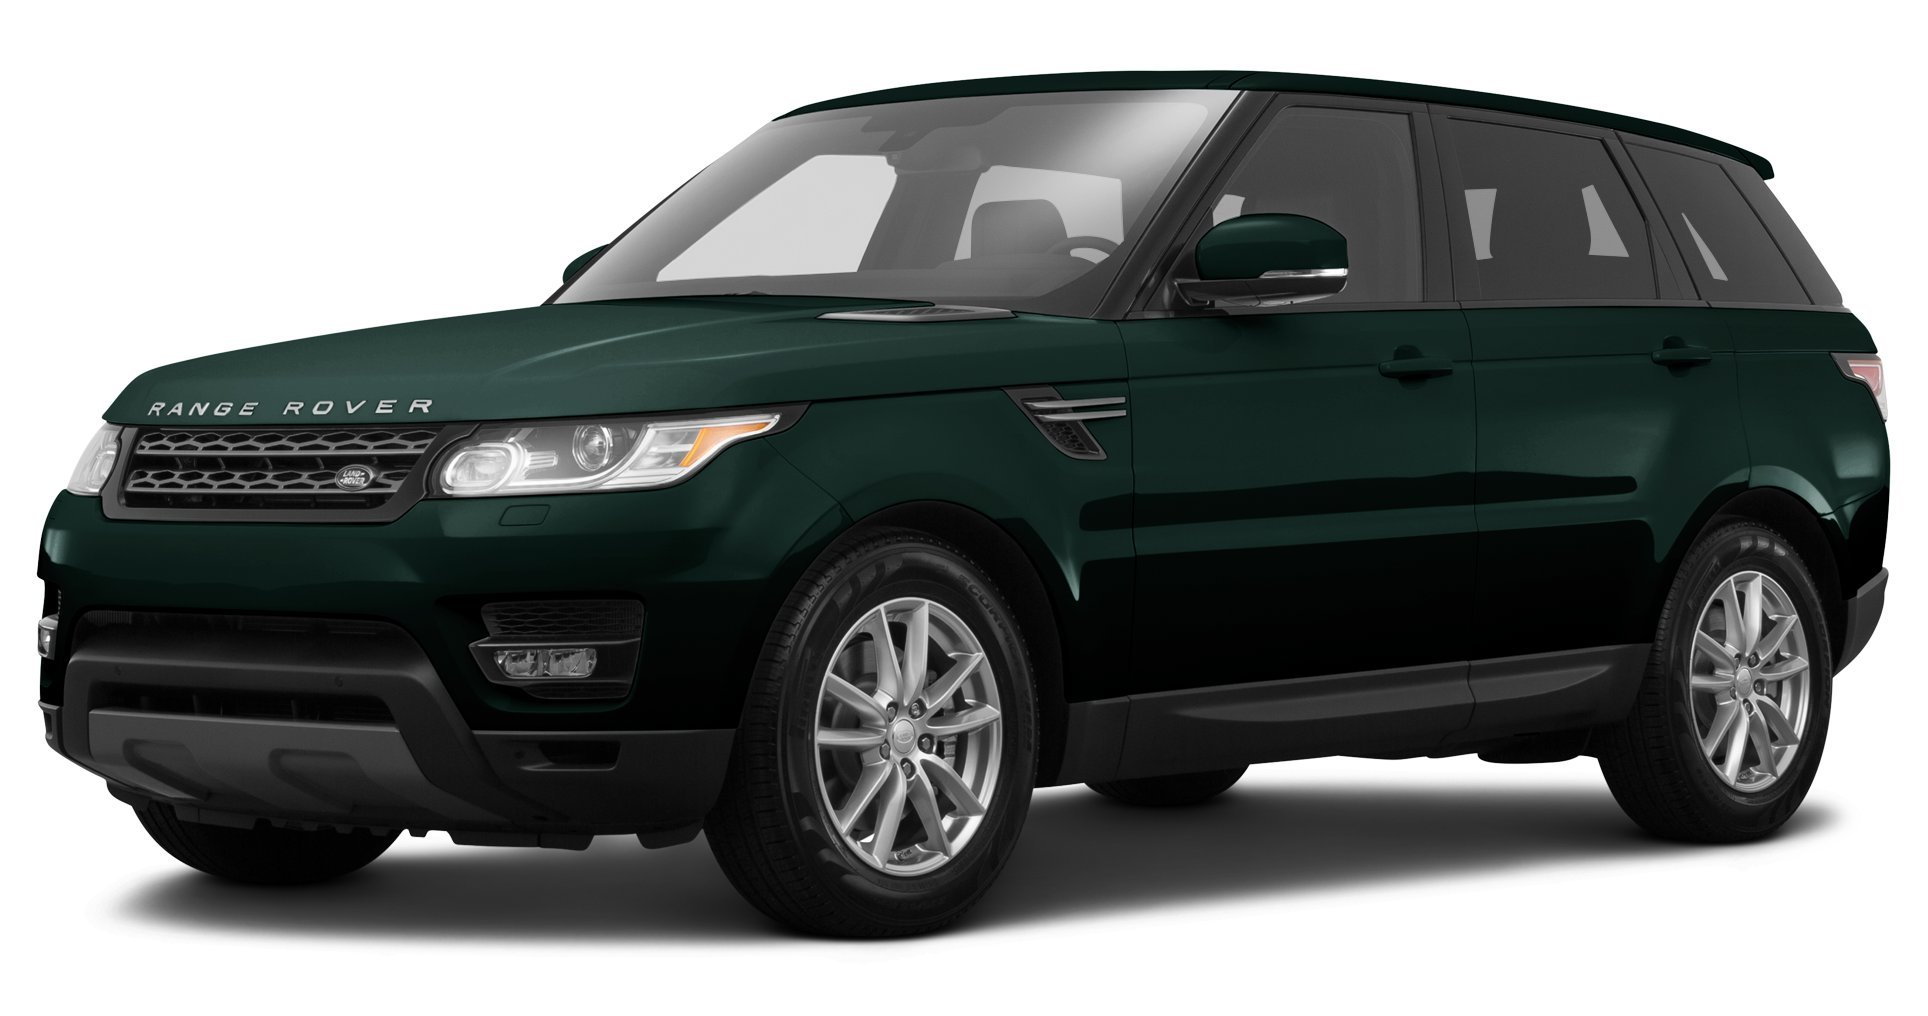 2015 land rover range rover evoque reviews images and specs vehicles. Black Bedroom Furniture Sets. Home Design Ideas